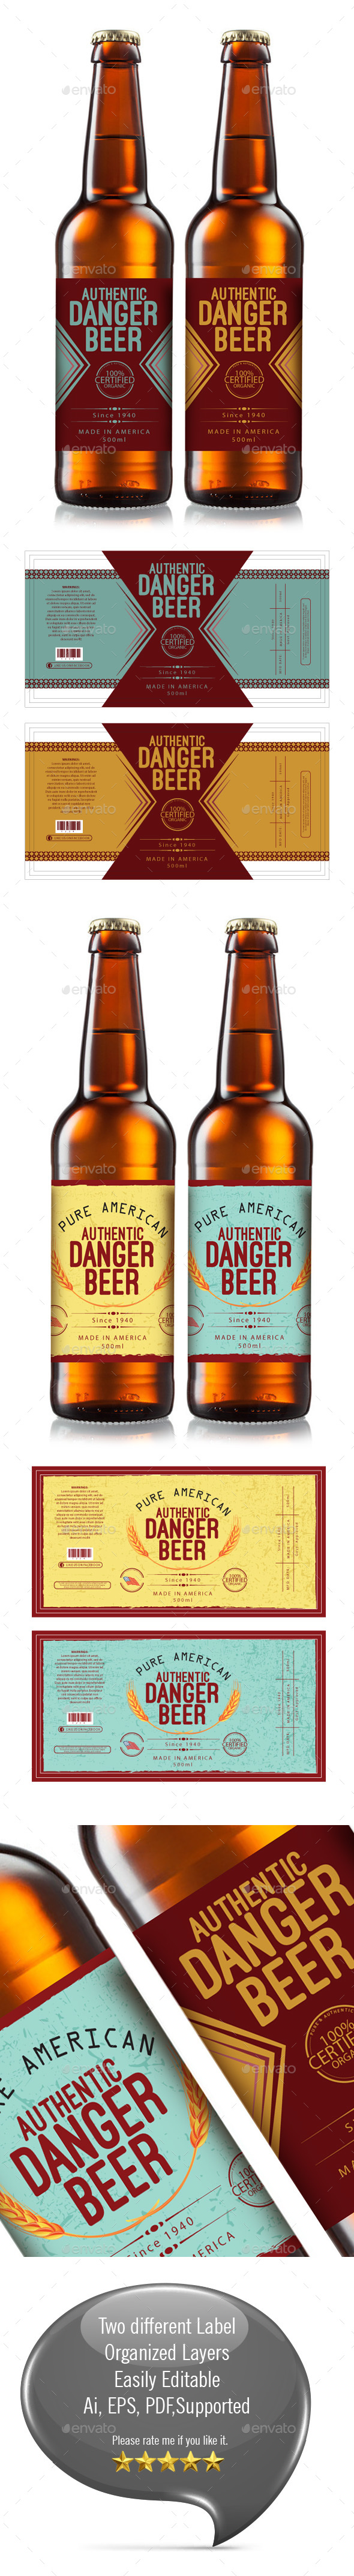 Beer Label Template - Packaging Print Templates